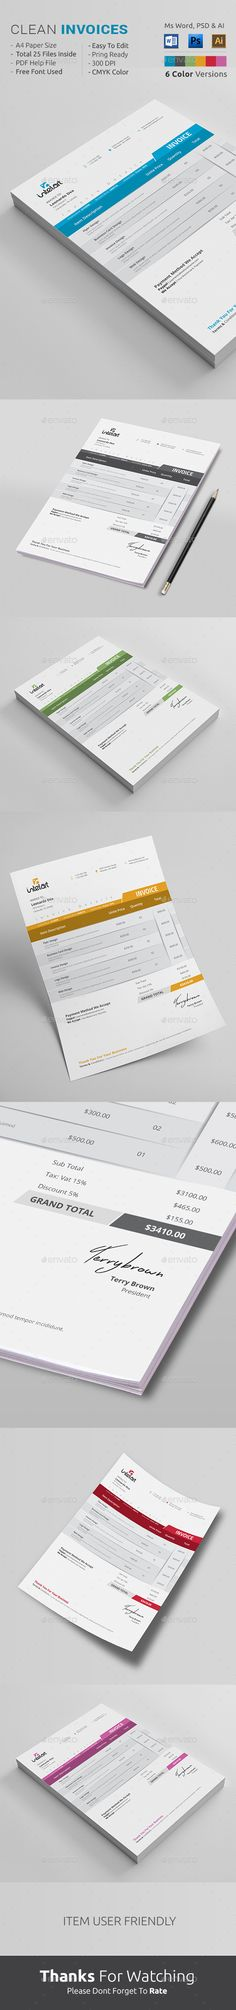 Invoice Invoice template, Minimal and Photoshop - word template for invoice